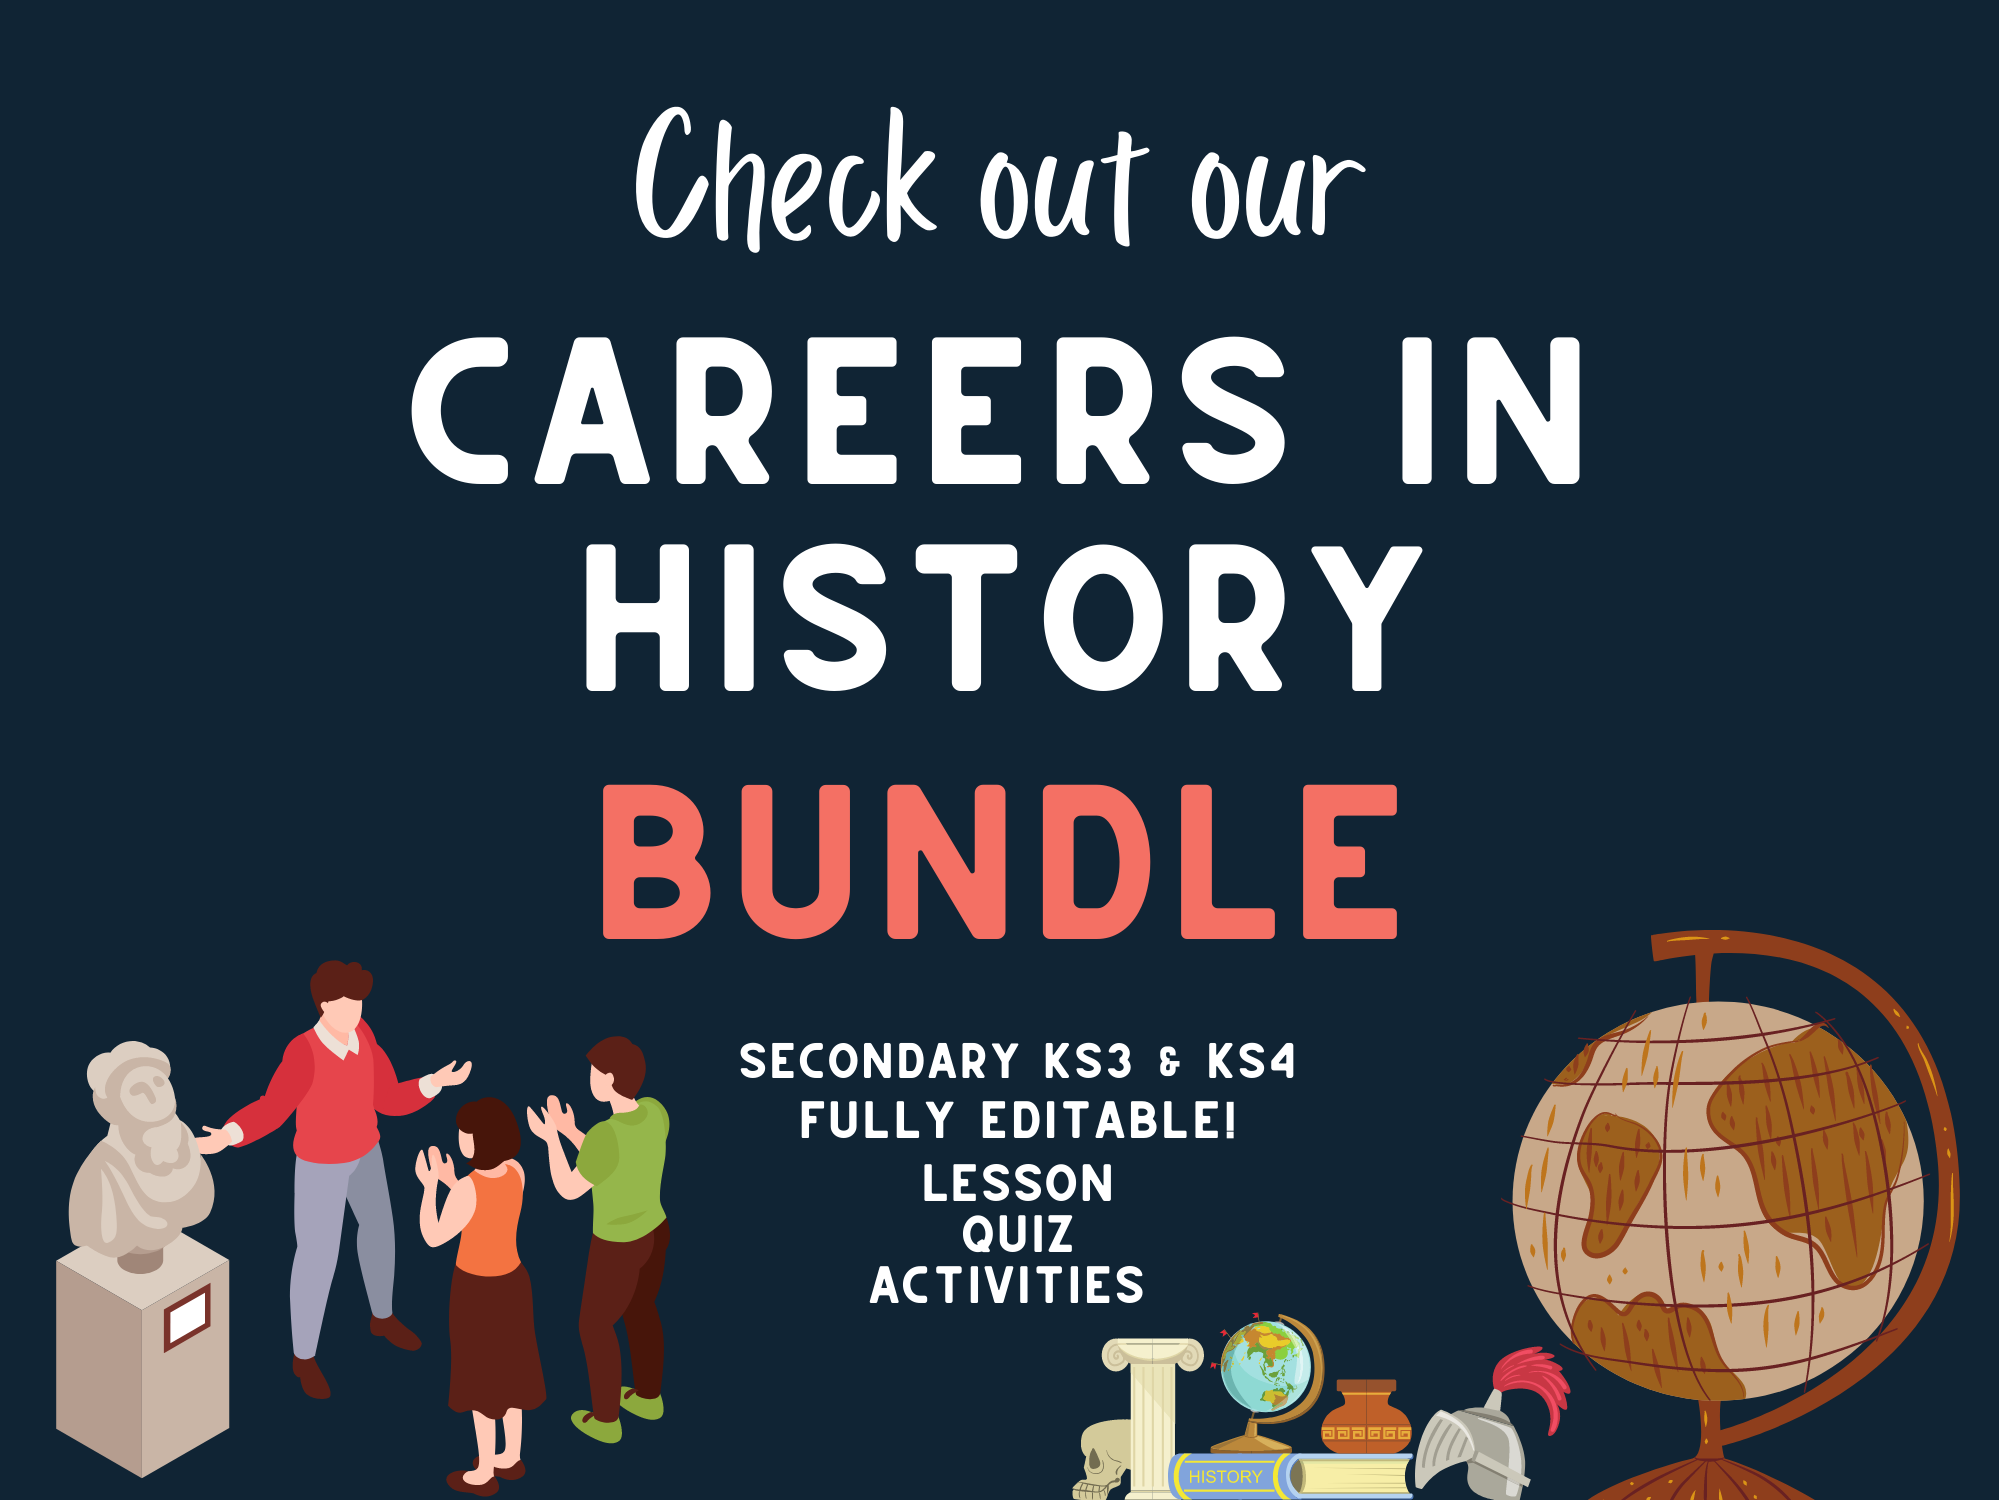 History Careers resources